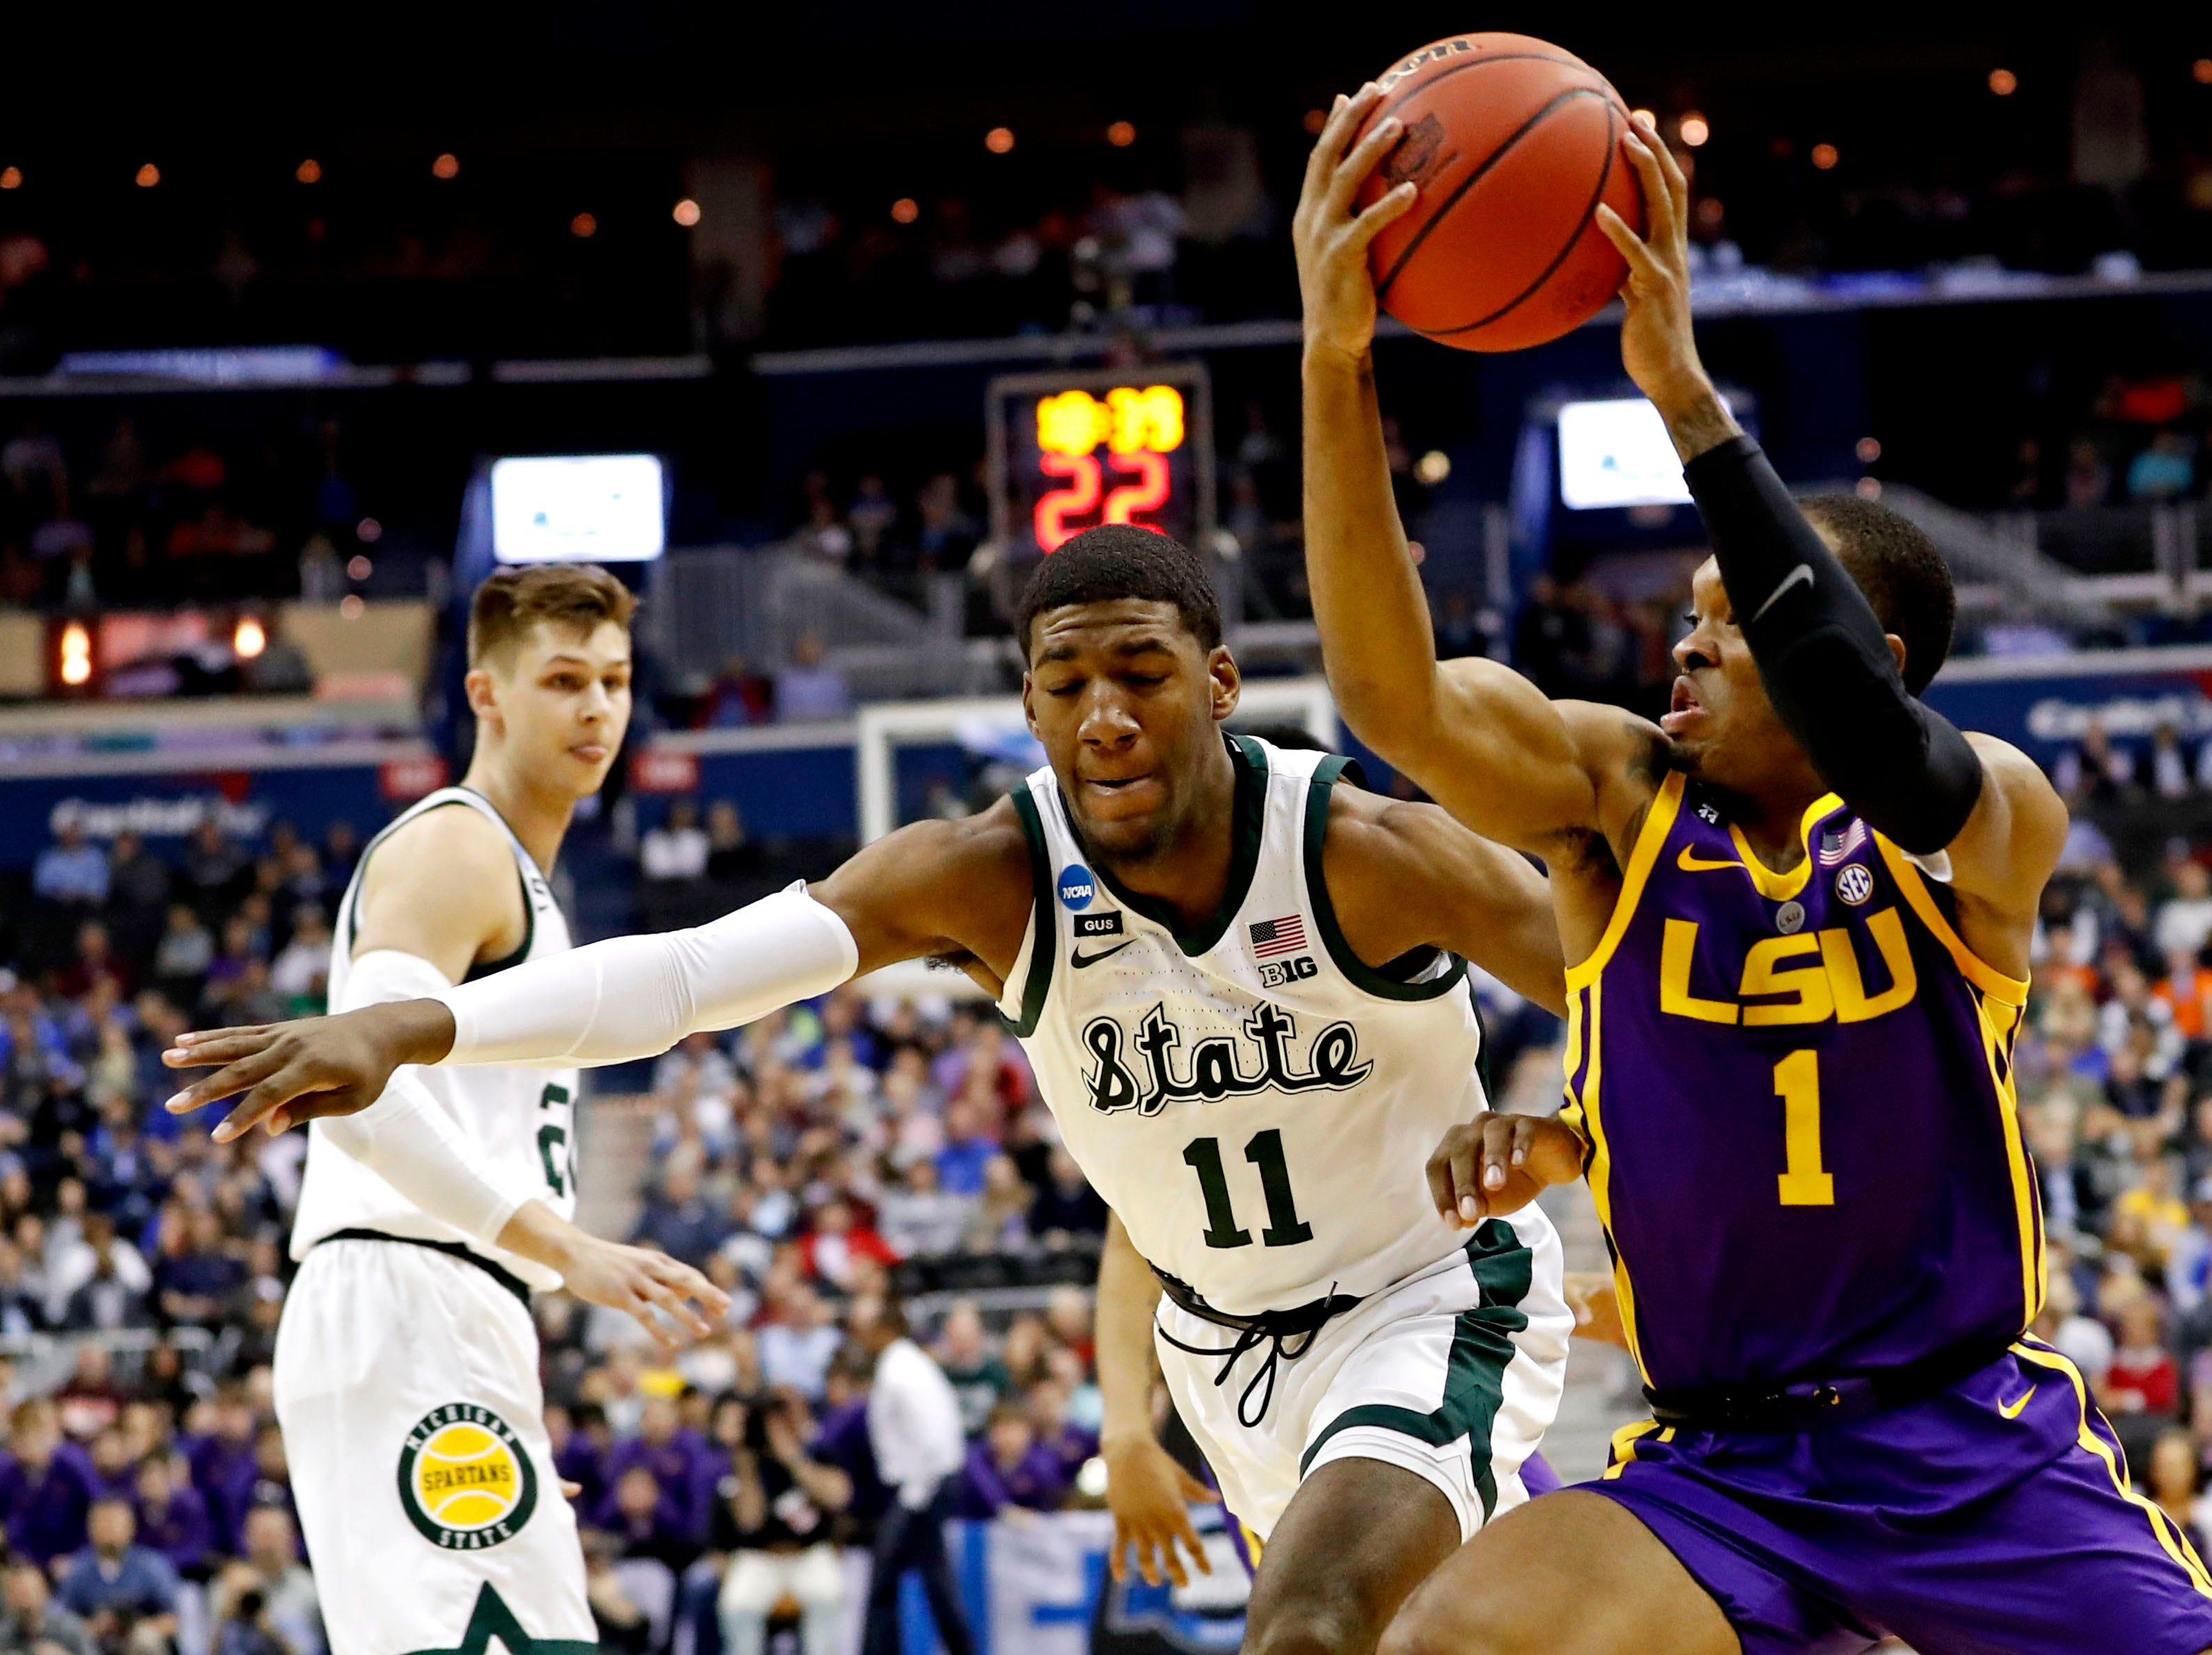 Mar 29, 2019; Washington, DC, USA; LSU Tigers guard Javonte Smart (1) drives to the basket against Michigan State Spartans forward Aaron Henry (11) during the first half in the semifinals of the east regional of the 2019 NCAA Tournament at Capital One Arena. Mandatory Credit: Geoff Burke-USA TODAY Sports